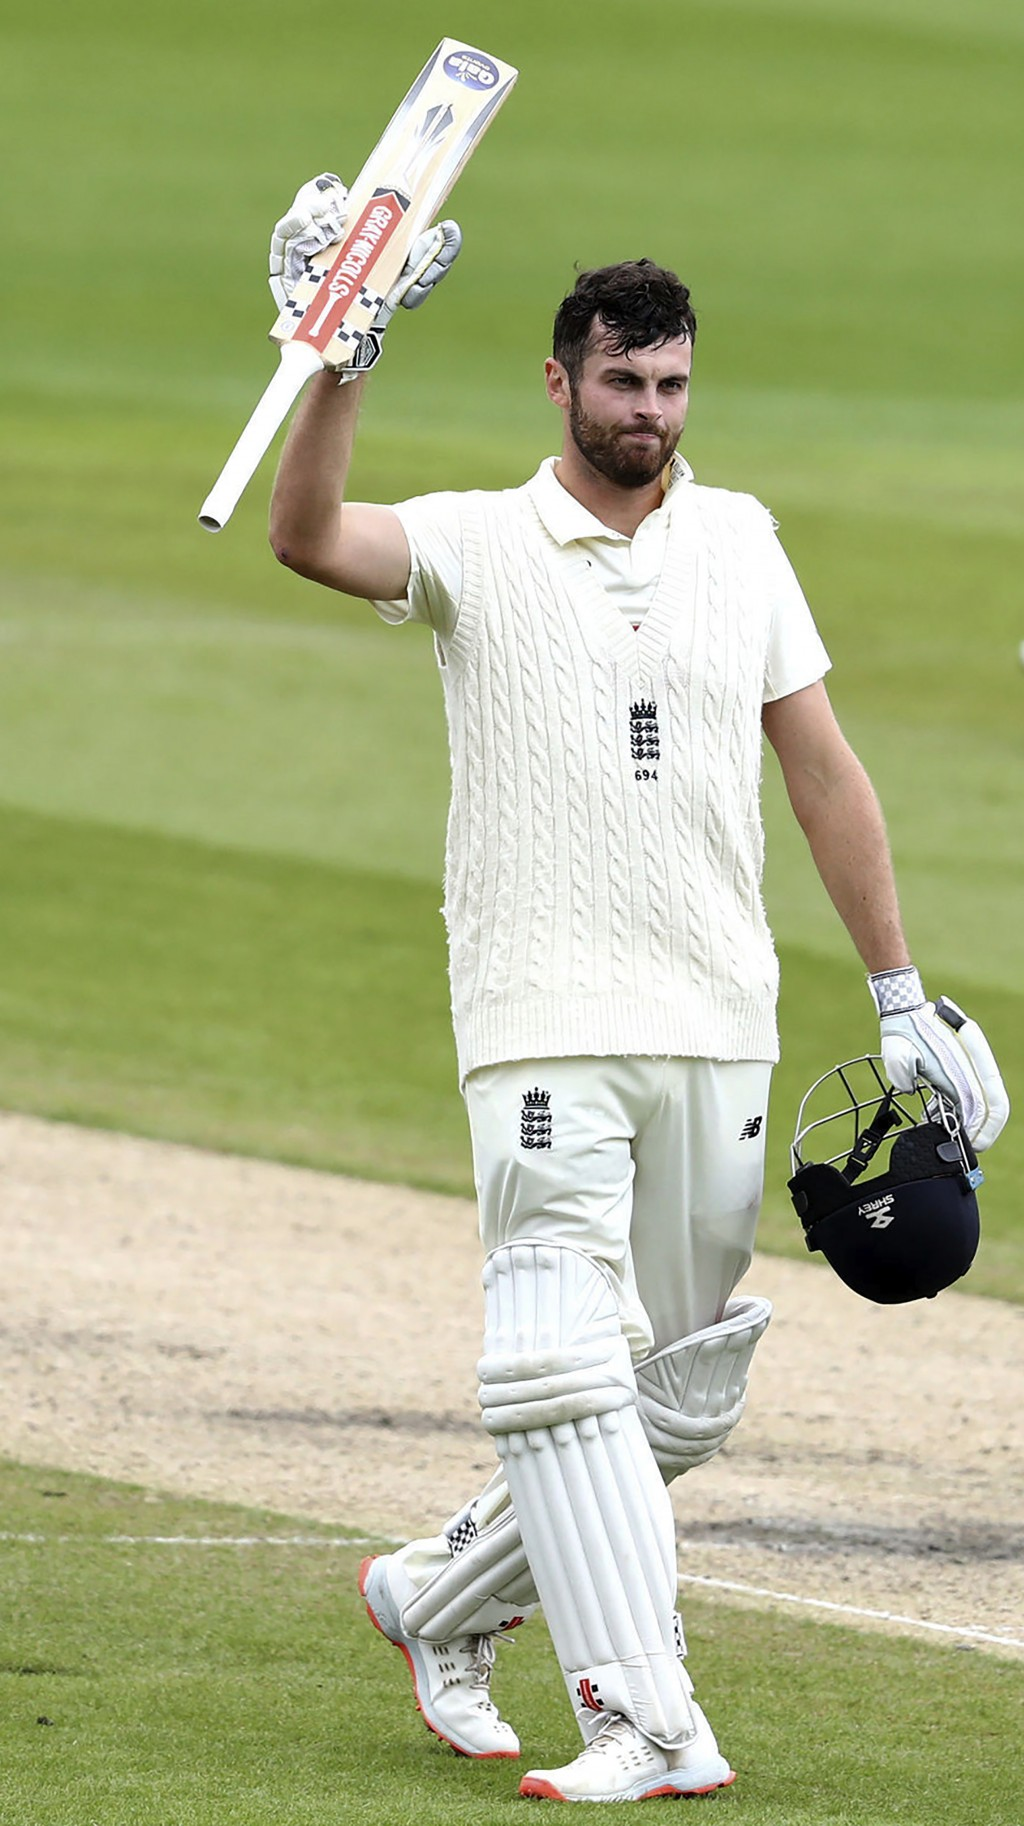 England's Dom Sibley raises his bat to celebrate scoring a century during the second day of the second cricket Test match between England and West Ind...